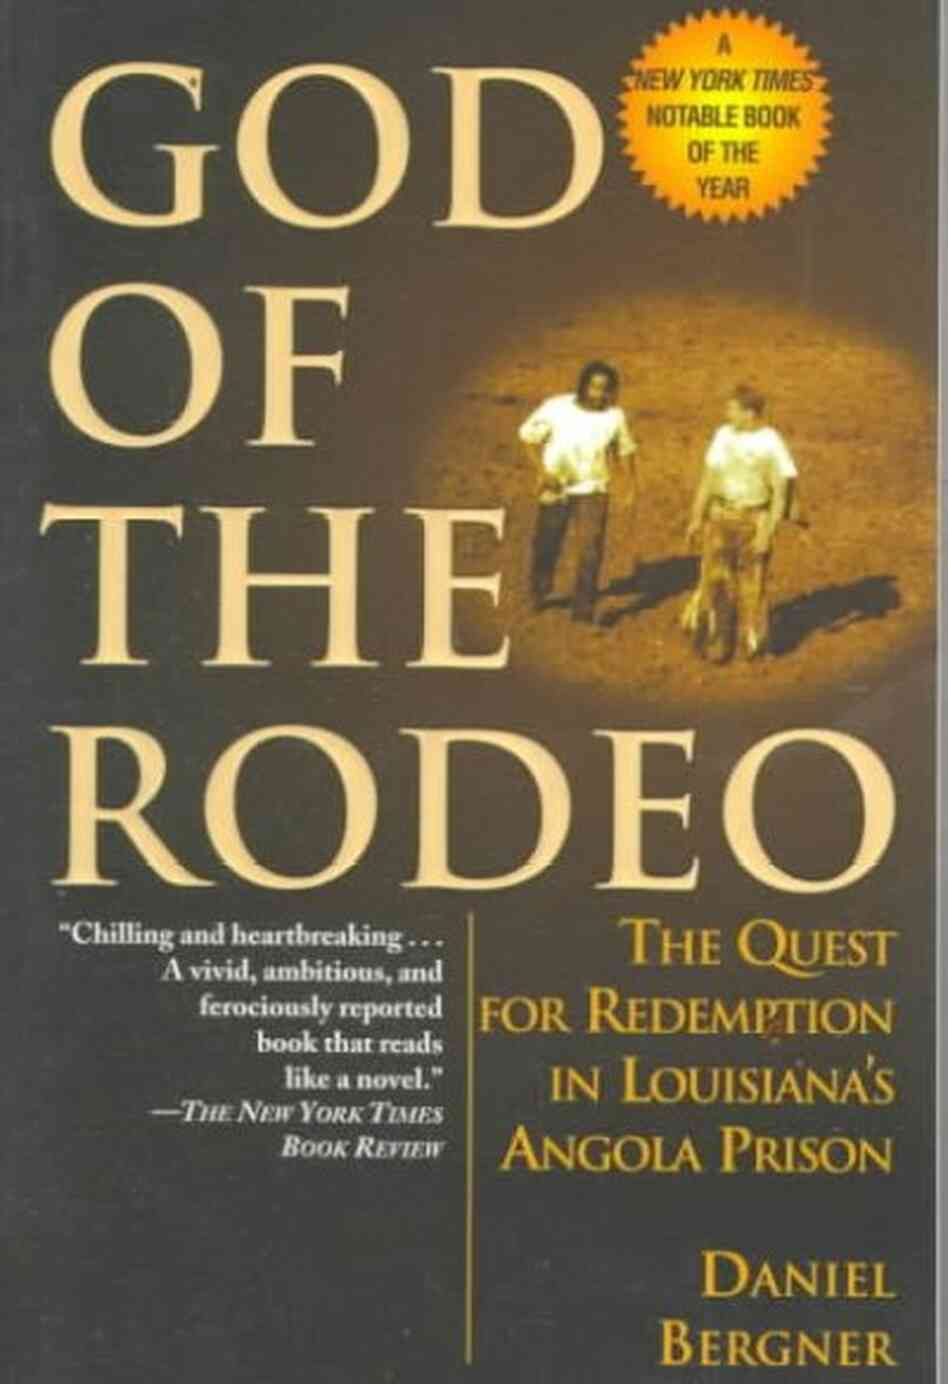 a review of the book the quest for redemption in louisianan angolas prison The prisoner did not consent to medication, but applied for review by this court,   more recent authorities declare that the community's quest for retributionthe  need  of additional side effects not contained in the supreme court's summary   had examined perry in the past and was perry's treating physician at angola ,.